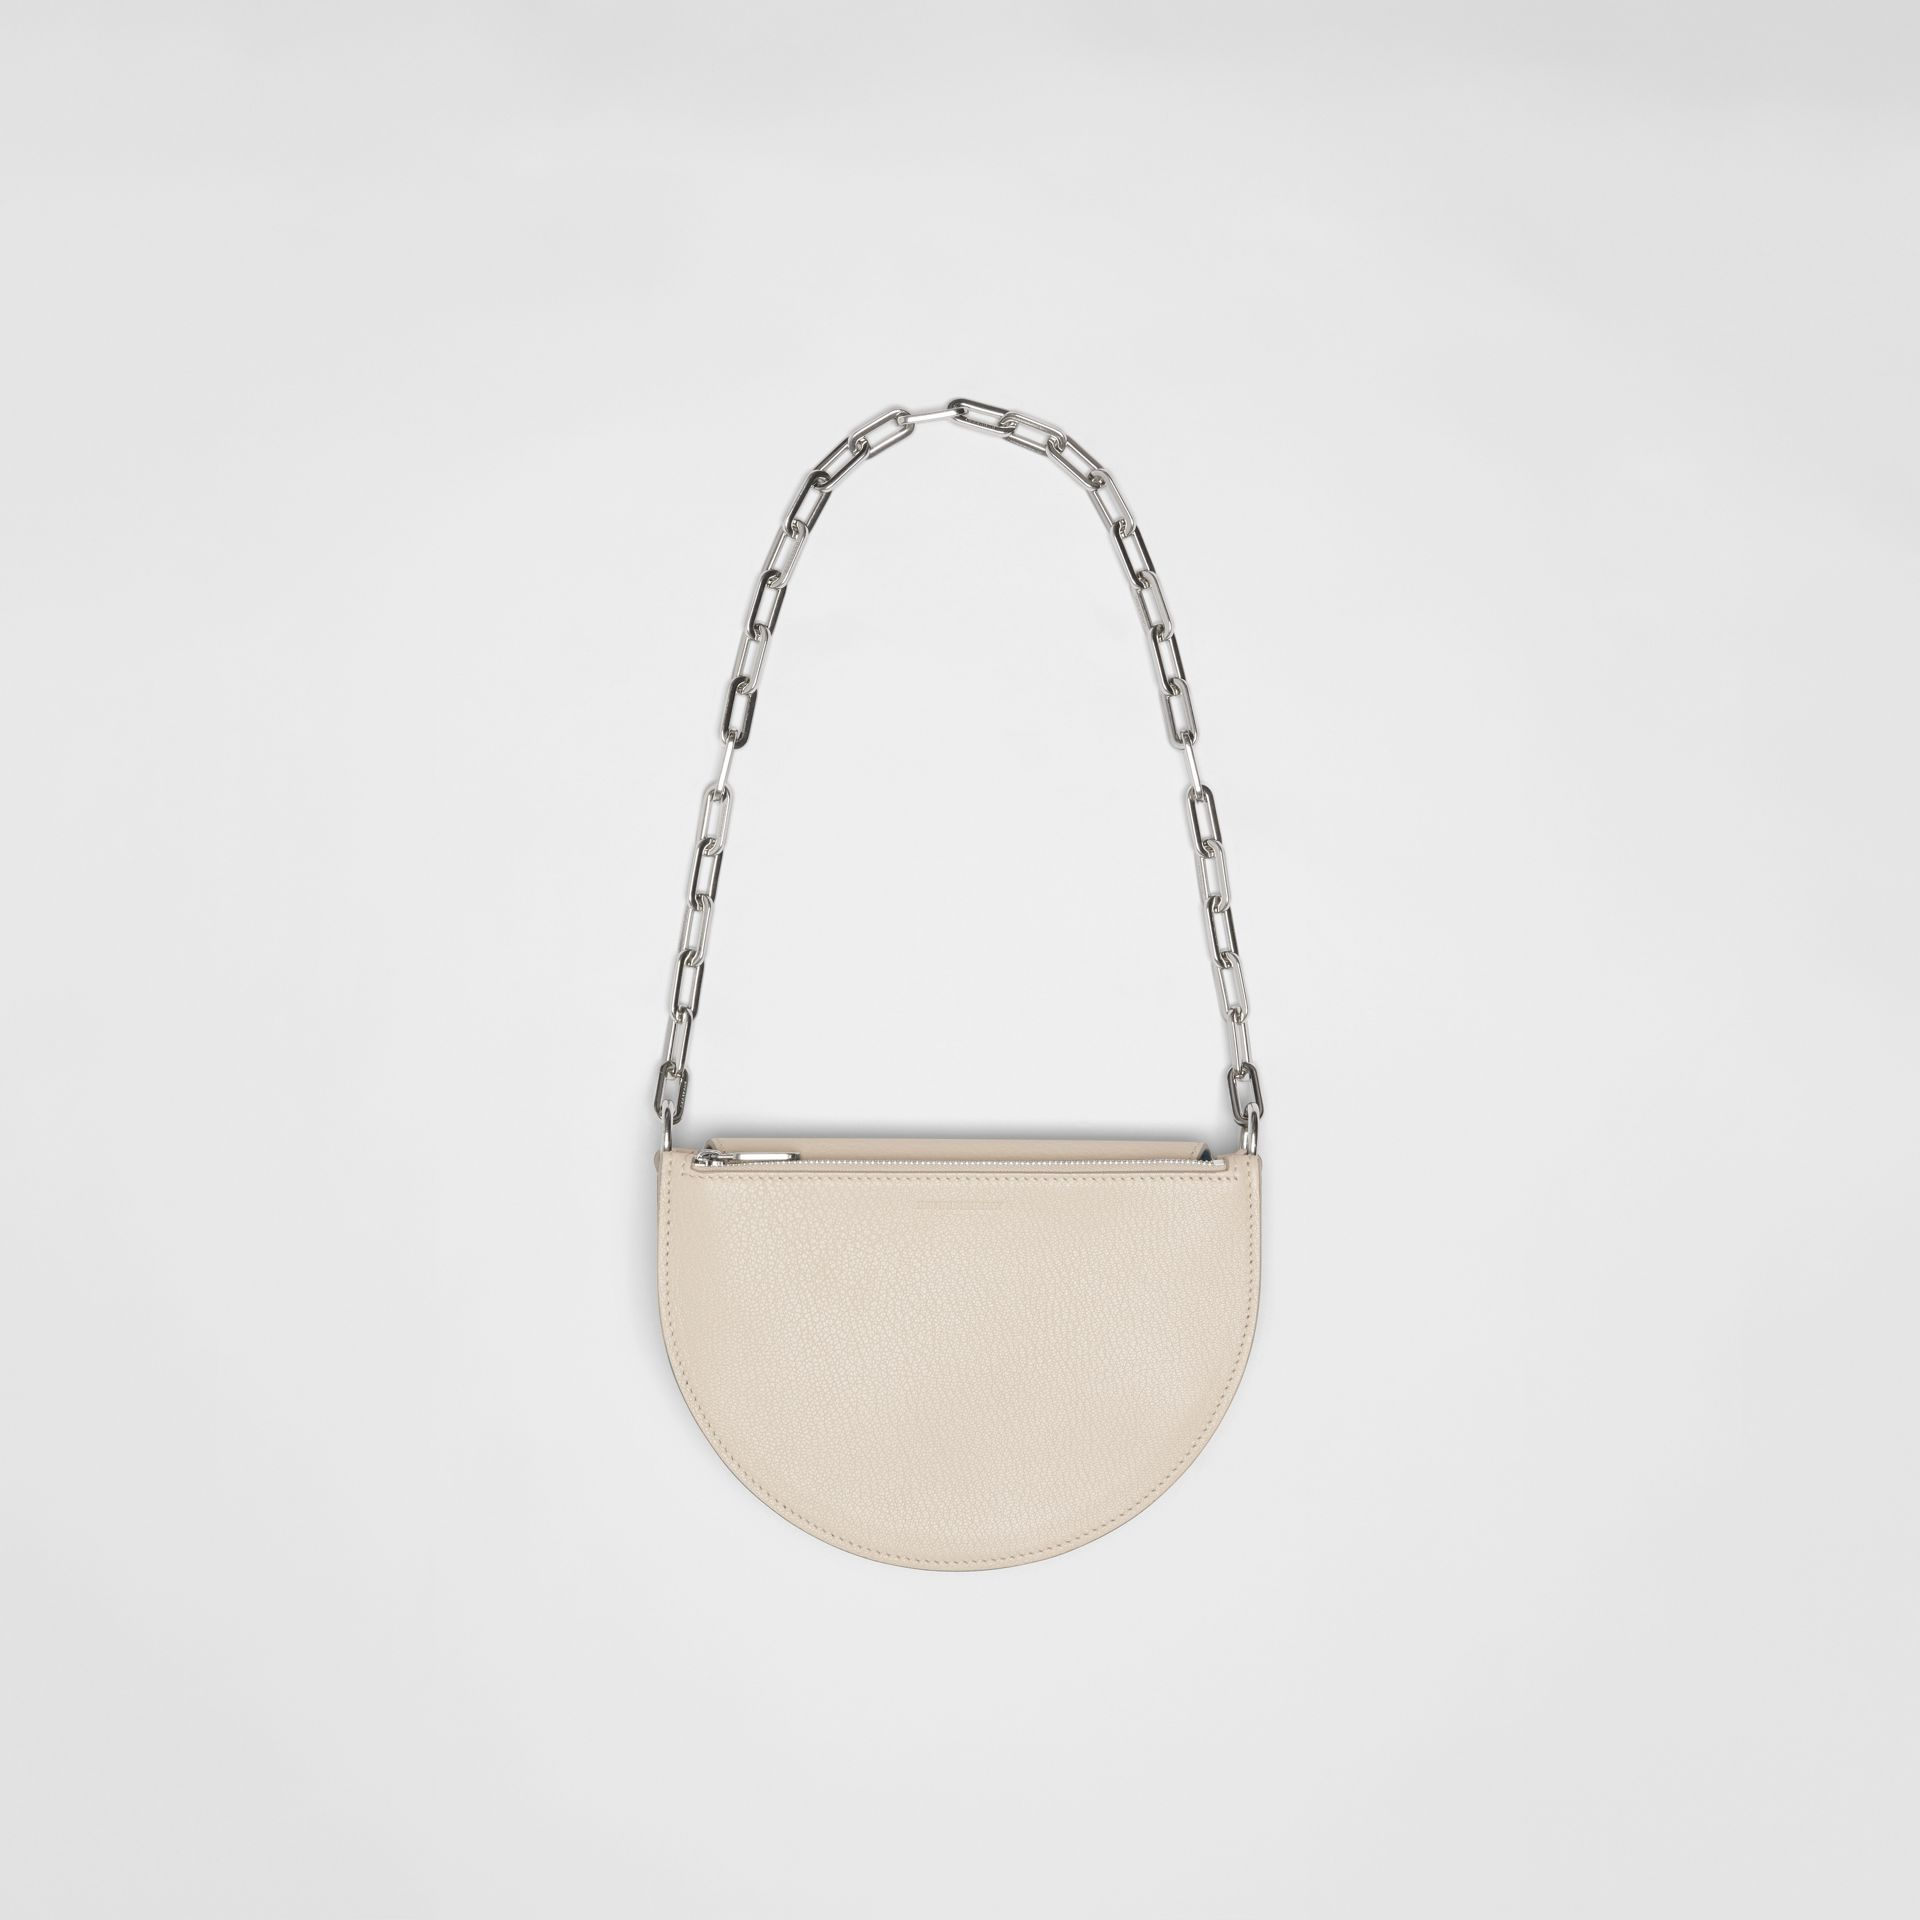 Petit sac The D Bag en cuir (Stone) - Femme | Burberry Canada - photo de la galerie 2